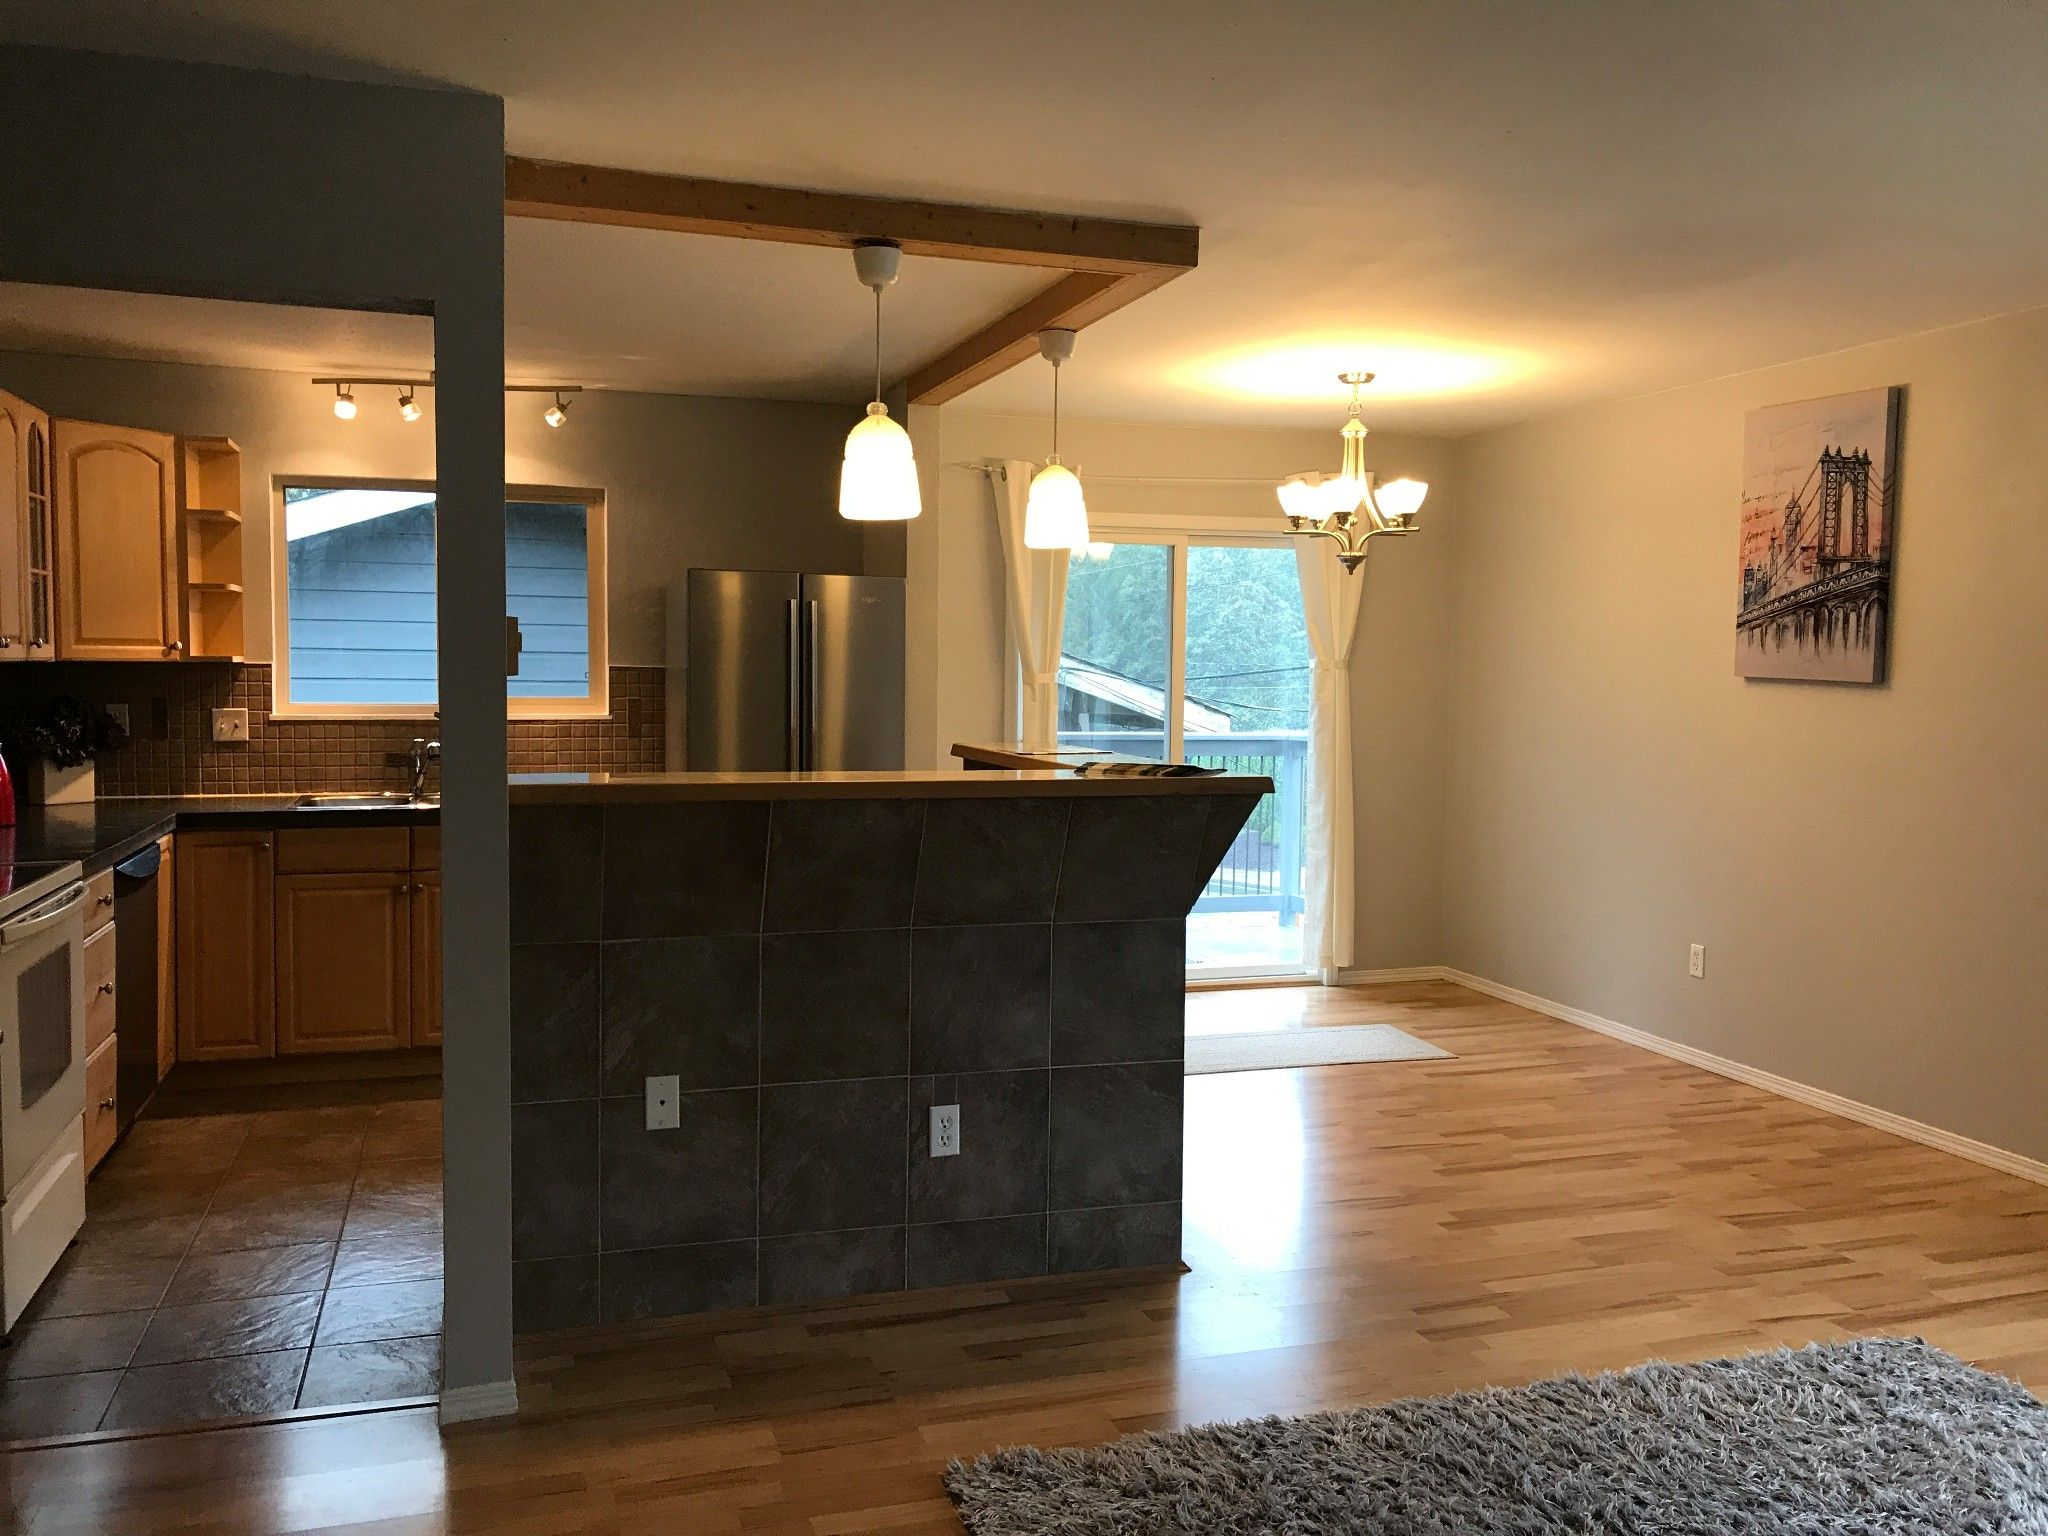 Photo 7: Photos: 35266 McKee Rd. in Abbotsford: Abbotsford East House for rent